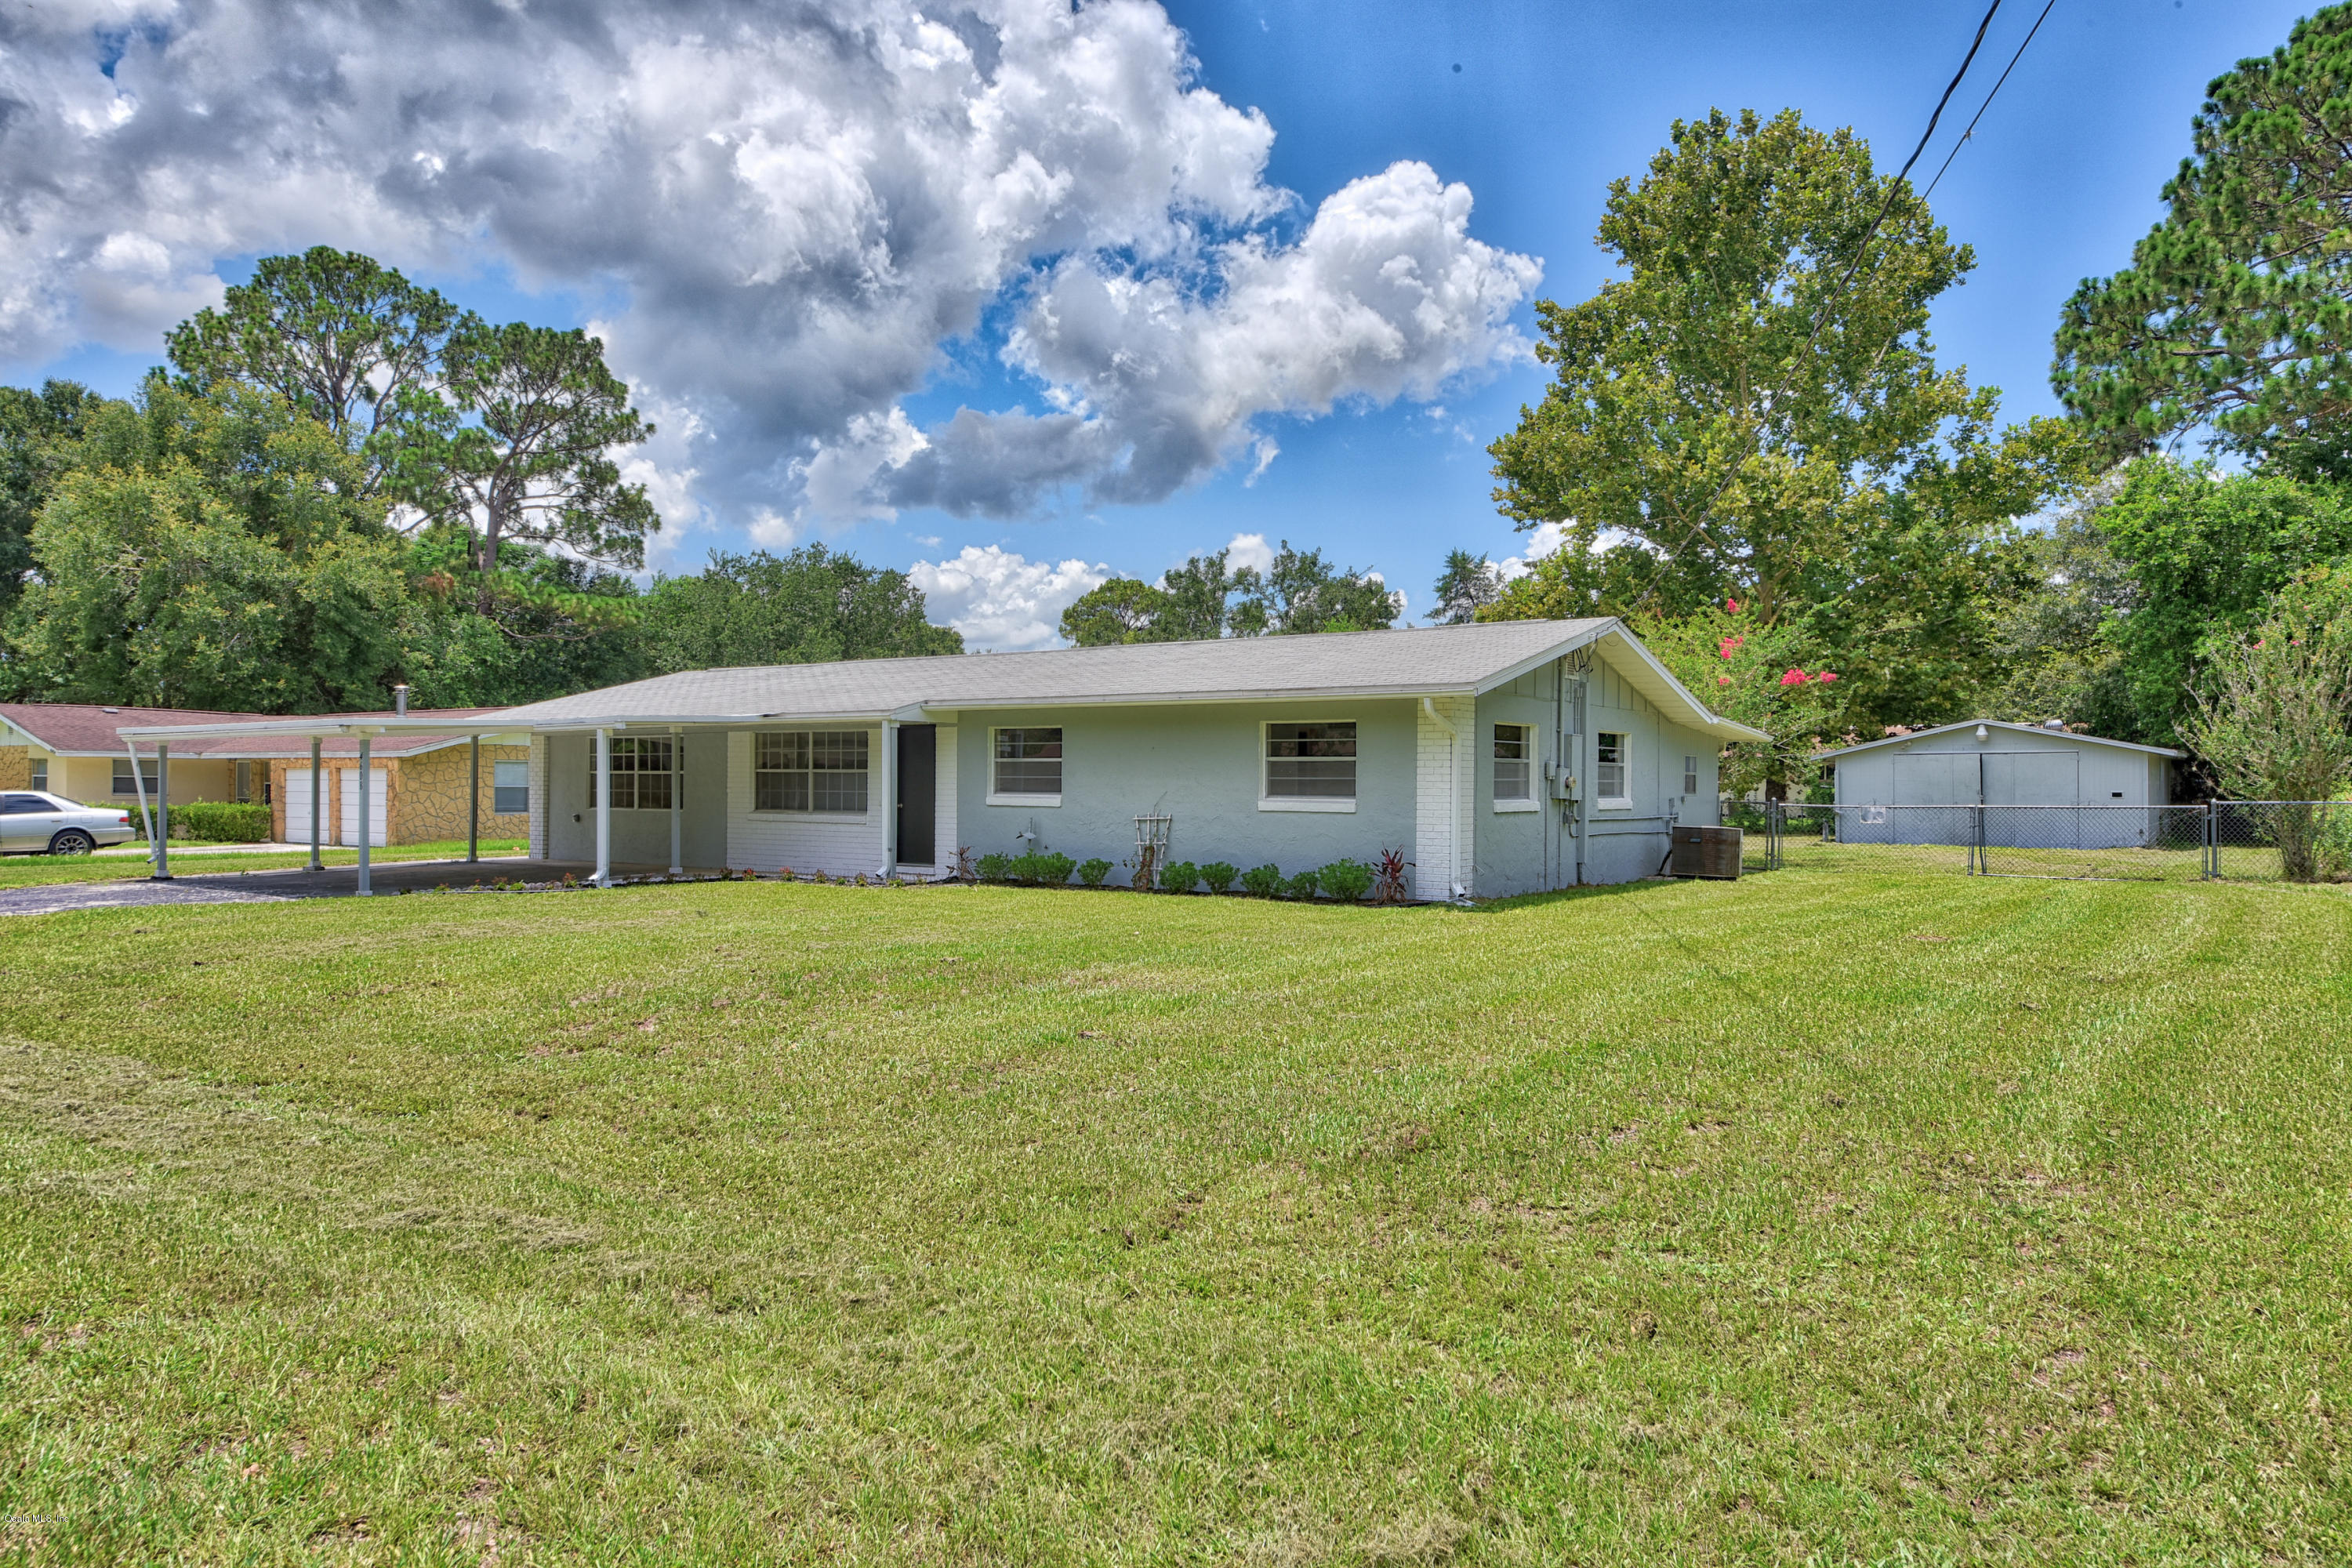 4608 NE 22ND AVENUE, OCALA, FL 34479